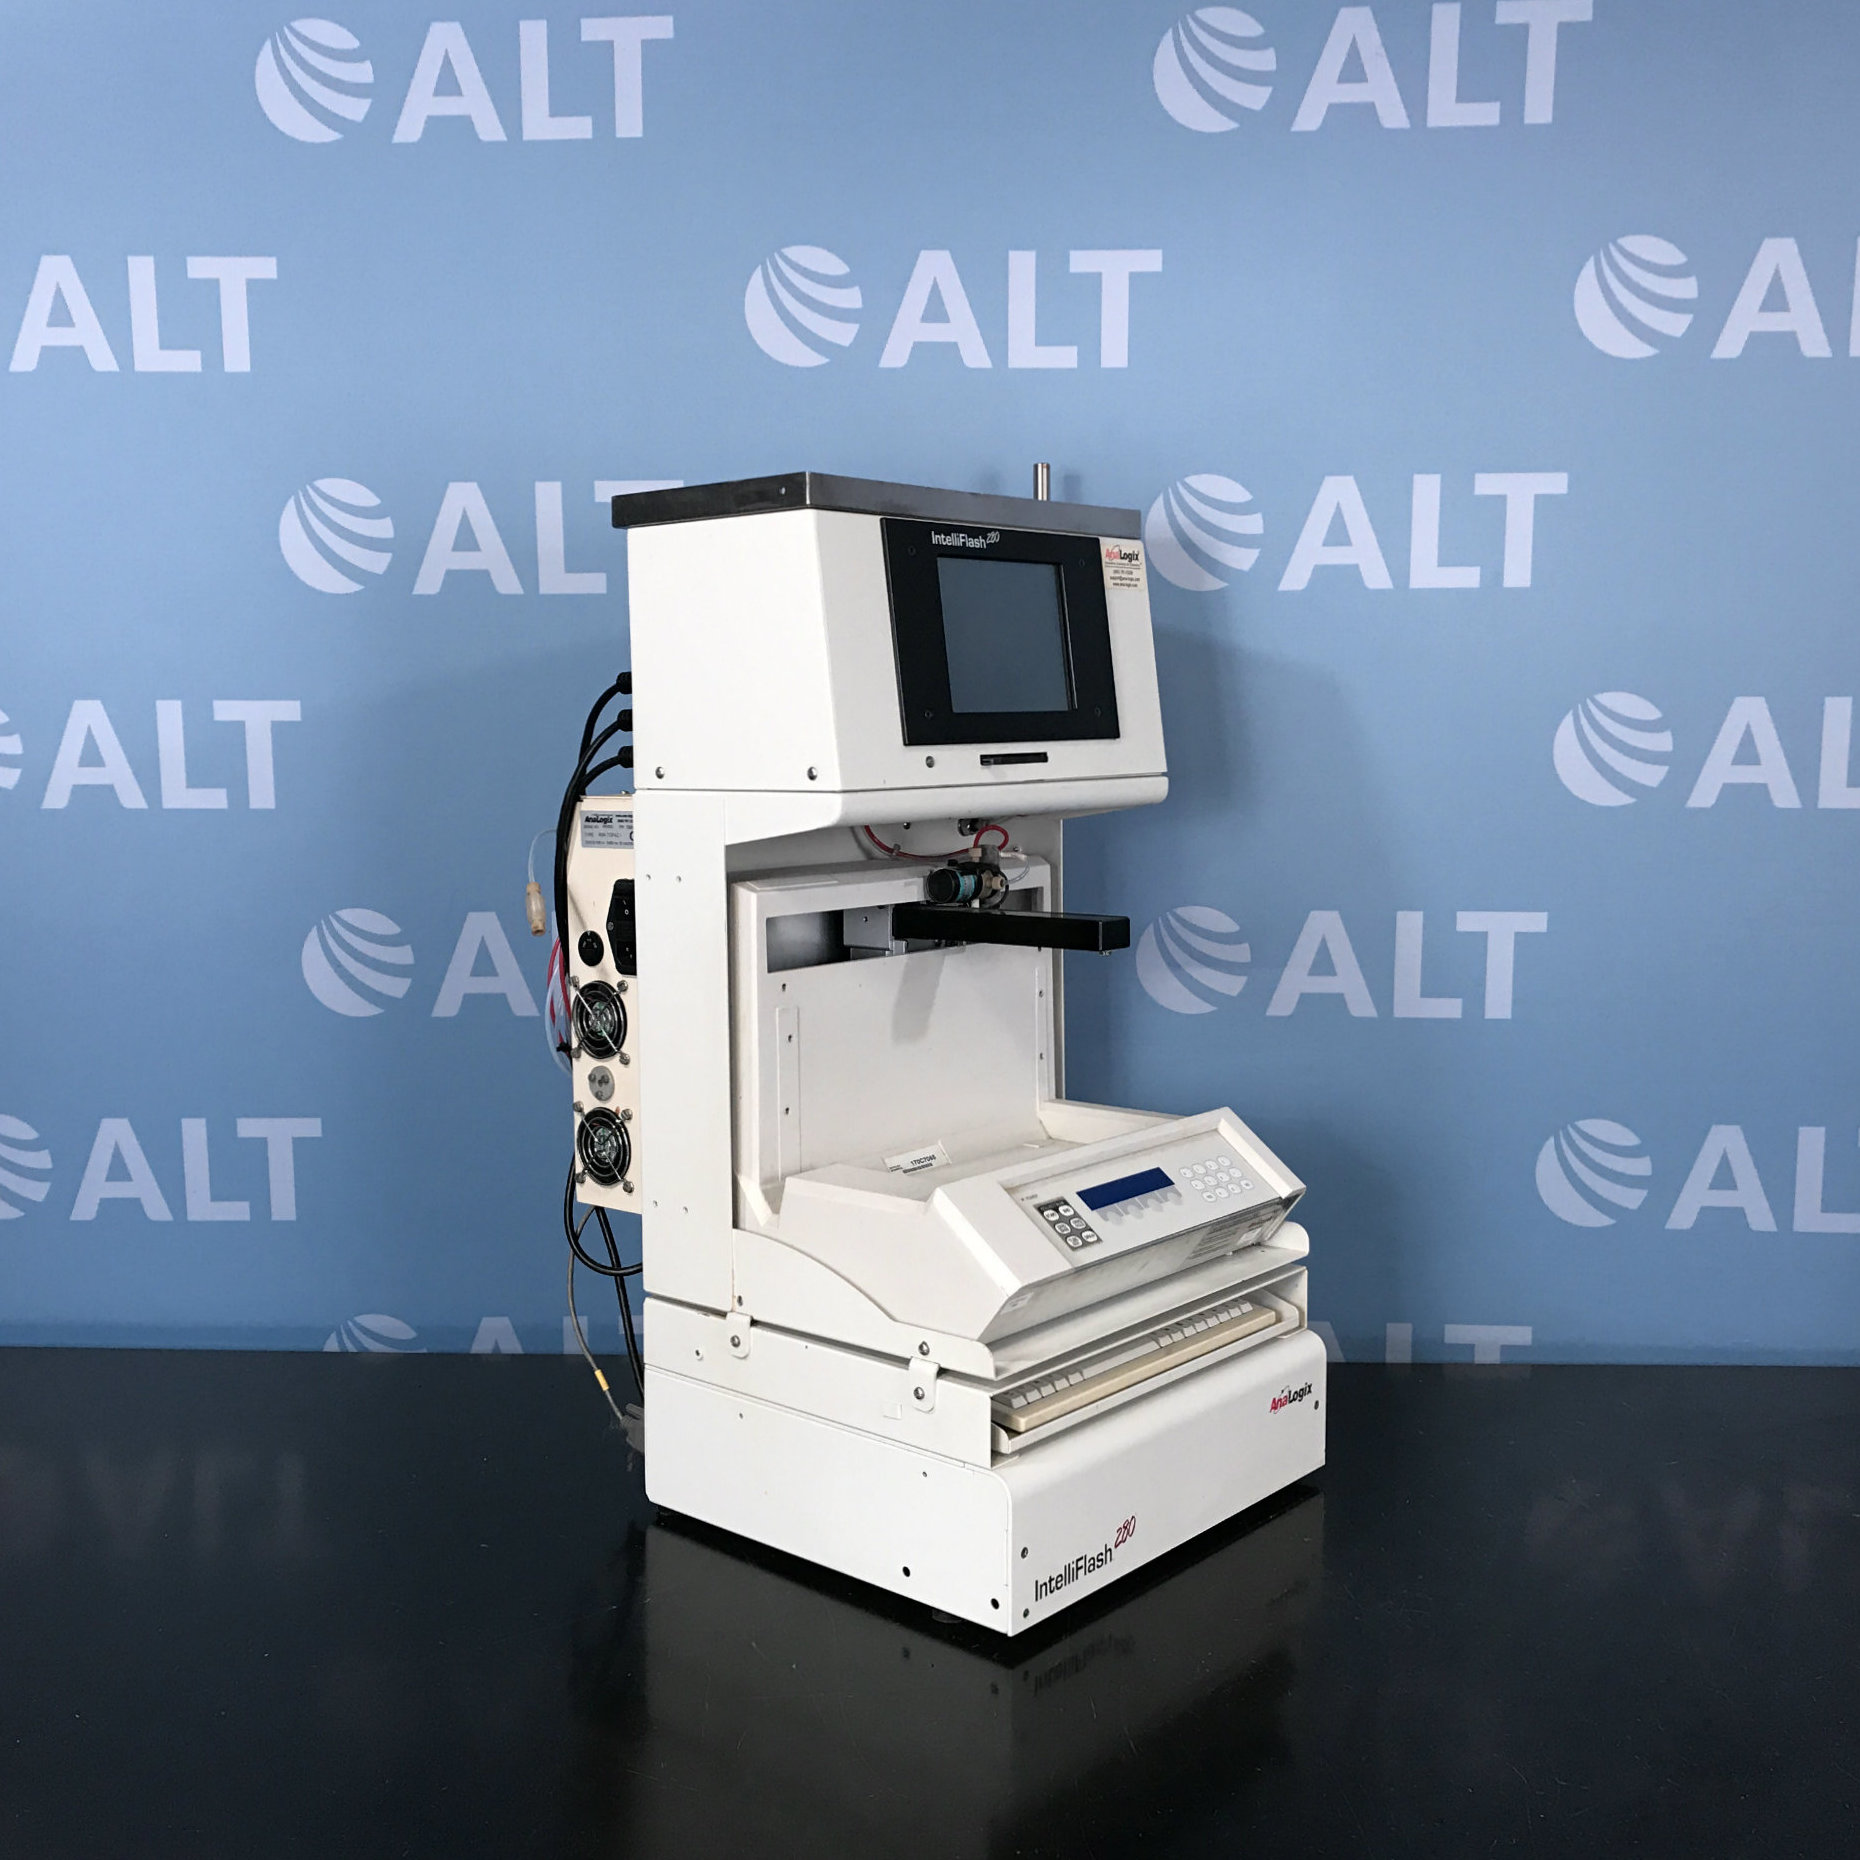 Analogix IntelliFlash 280 System Flash Chromatography Workstation Image